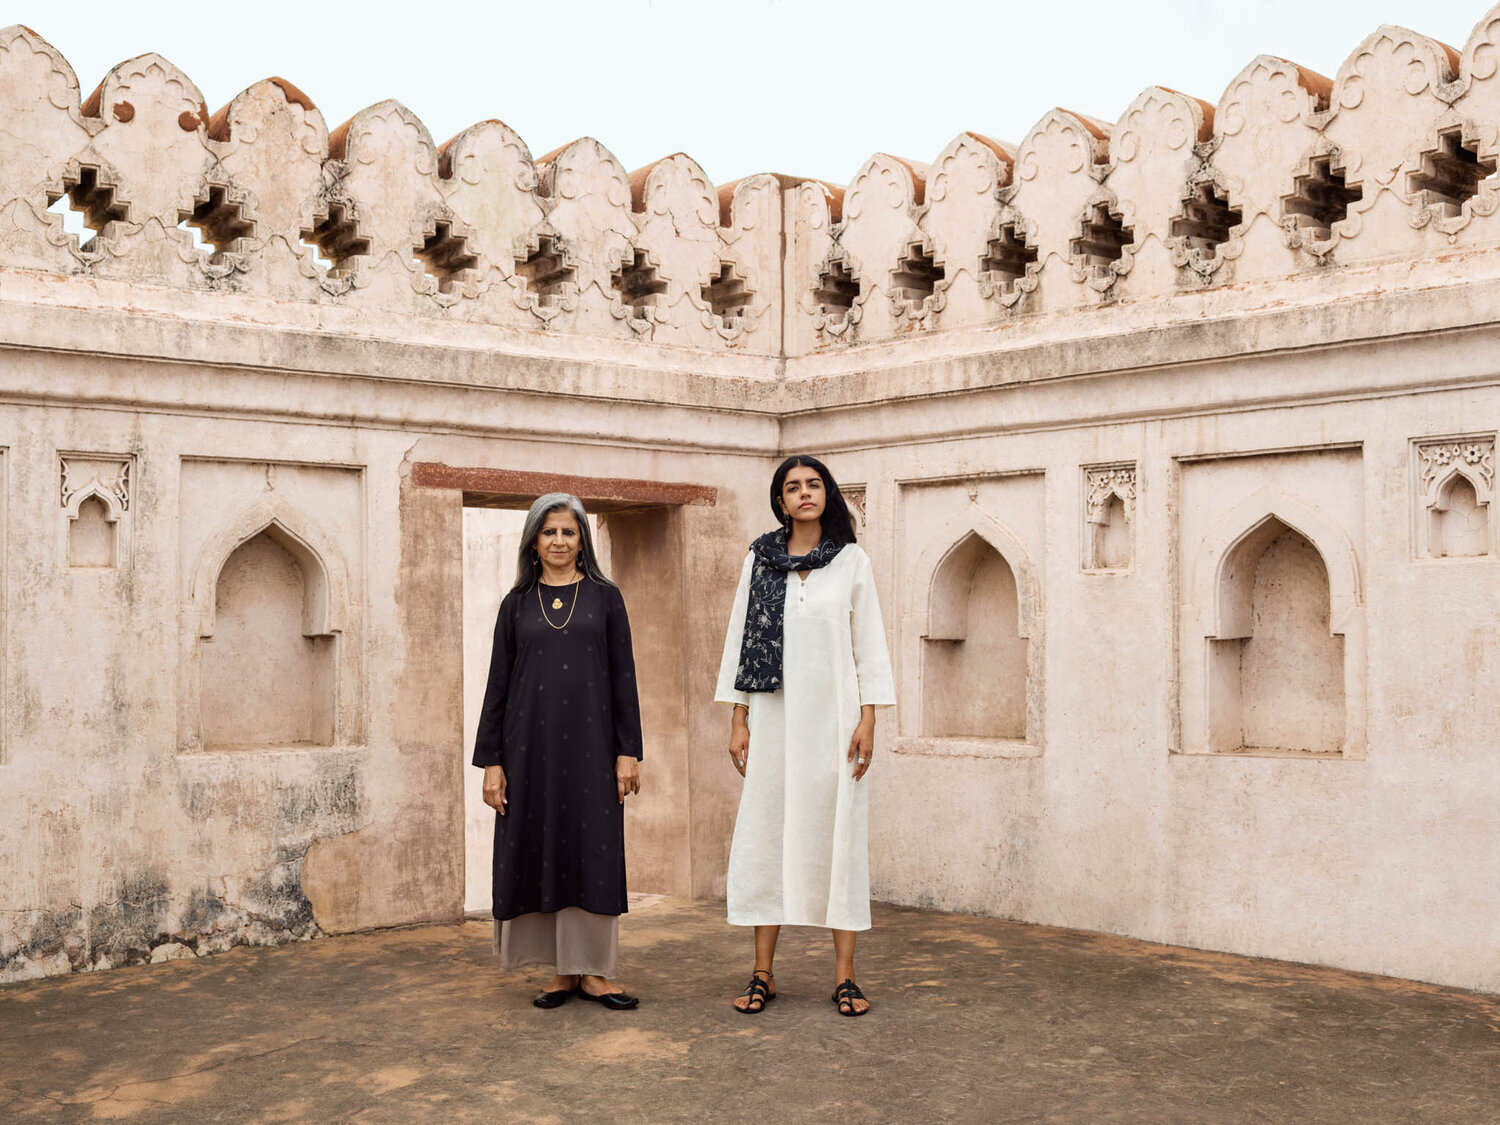 Models dressed in kurtas from Rina Singh's first kurta collection, which launched in India in October 2019. (UNIQLO)